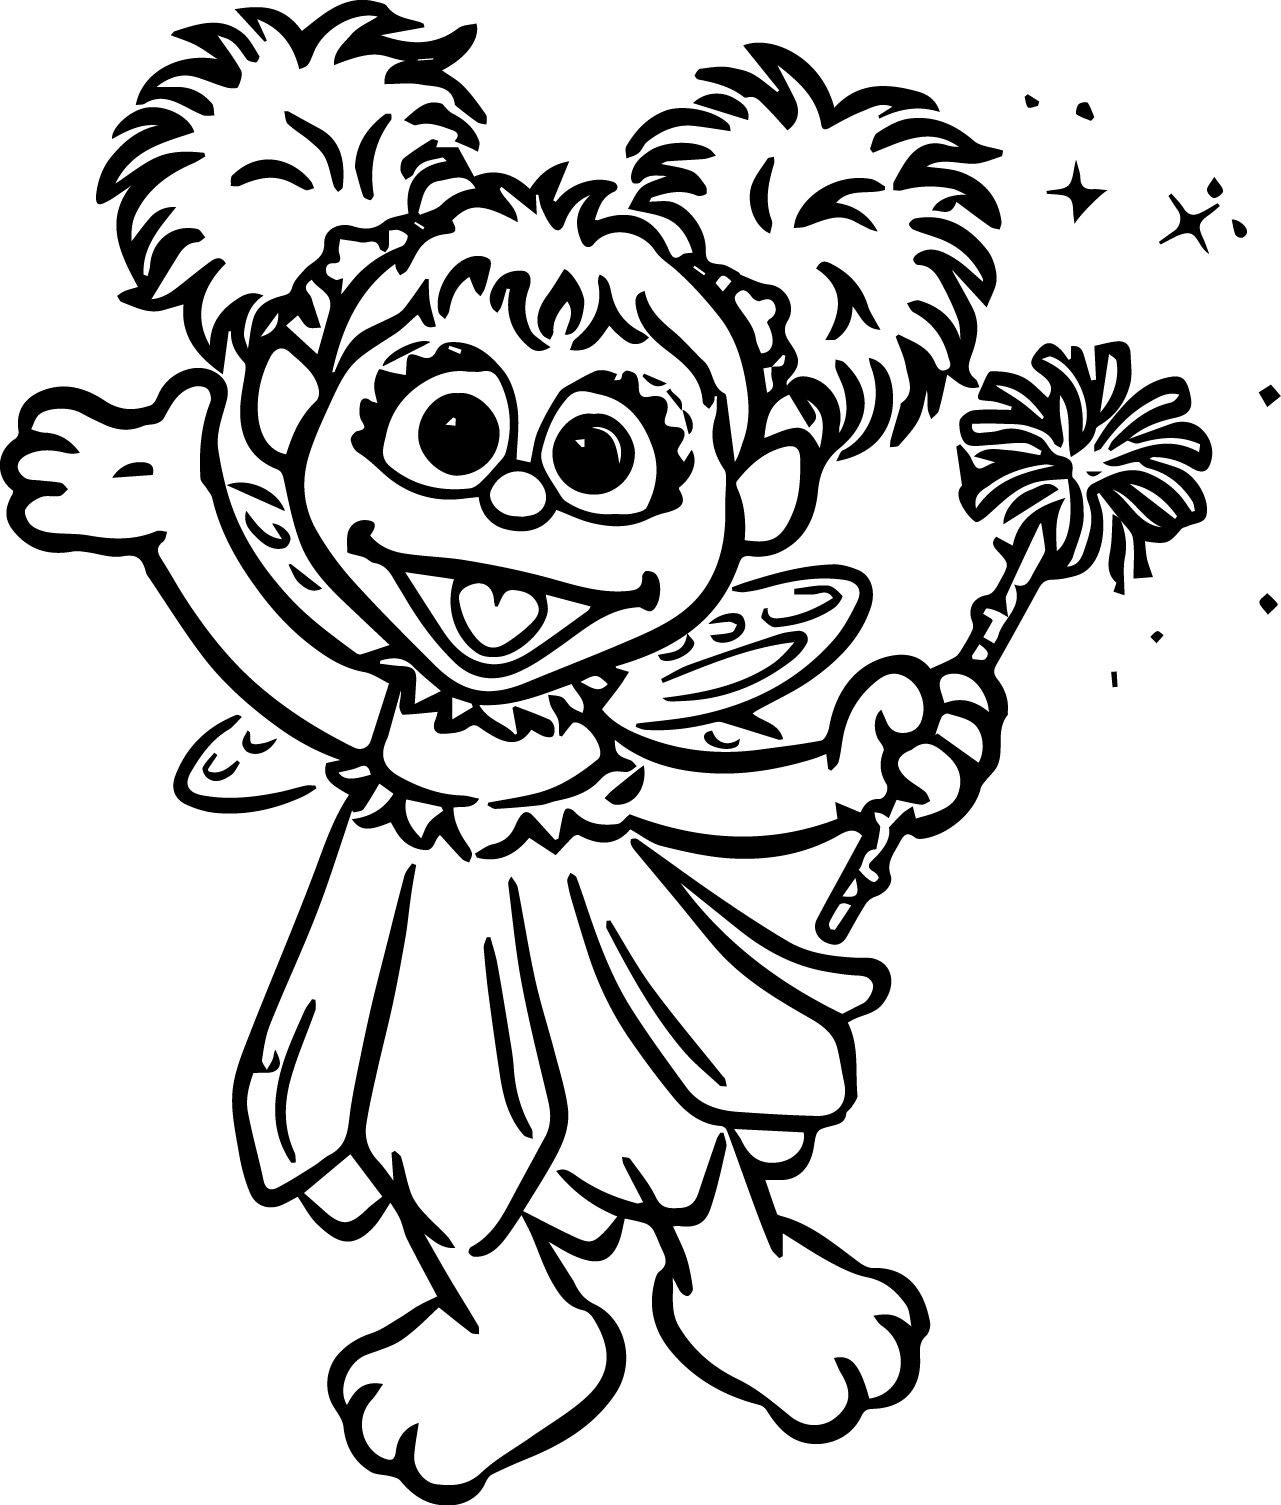 1281x1505 Oscar The Grouch Coloring Pages Ben Cartoon Pictures Coloring